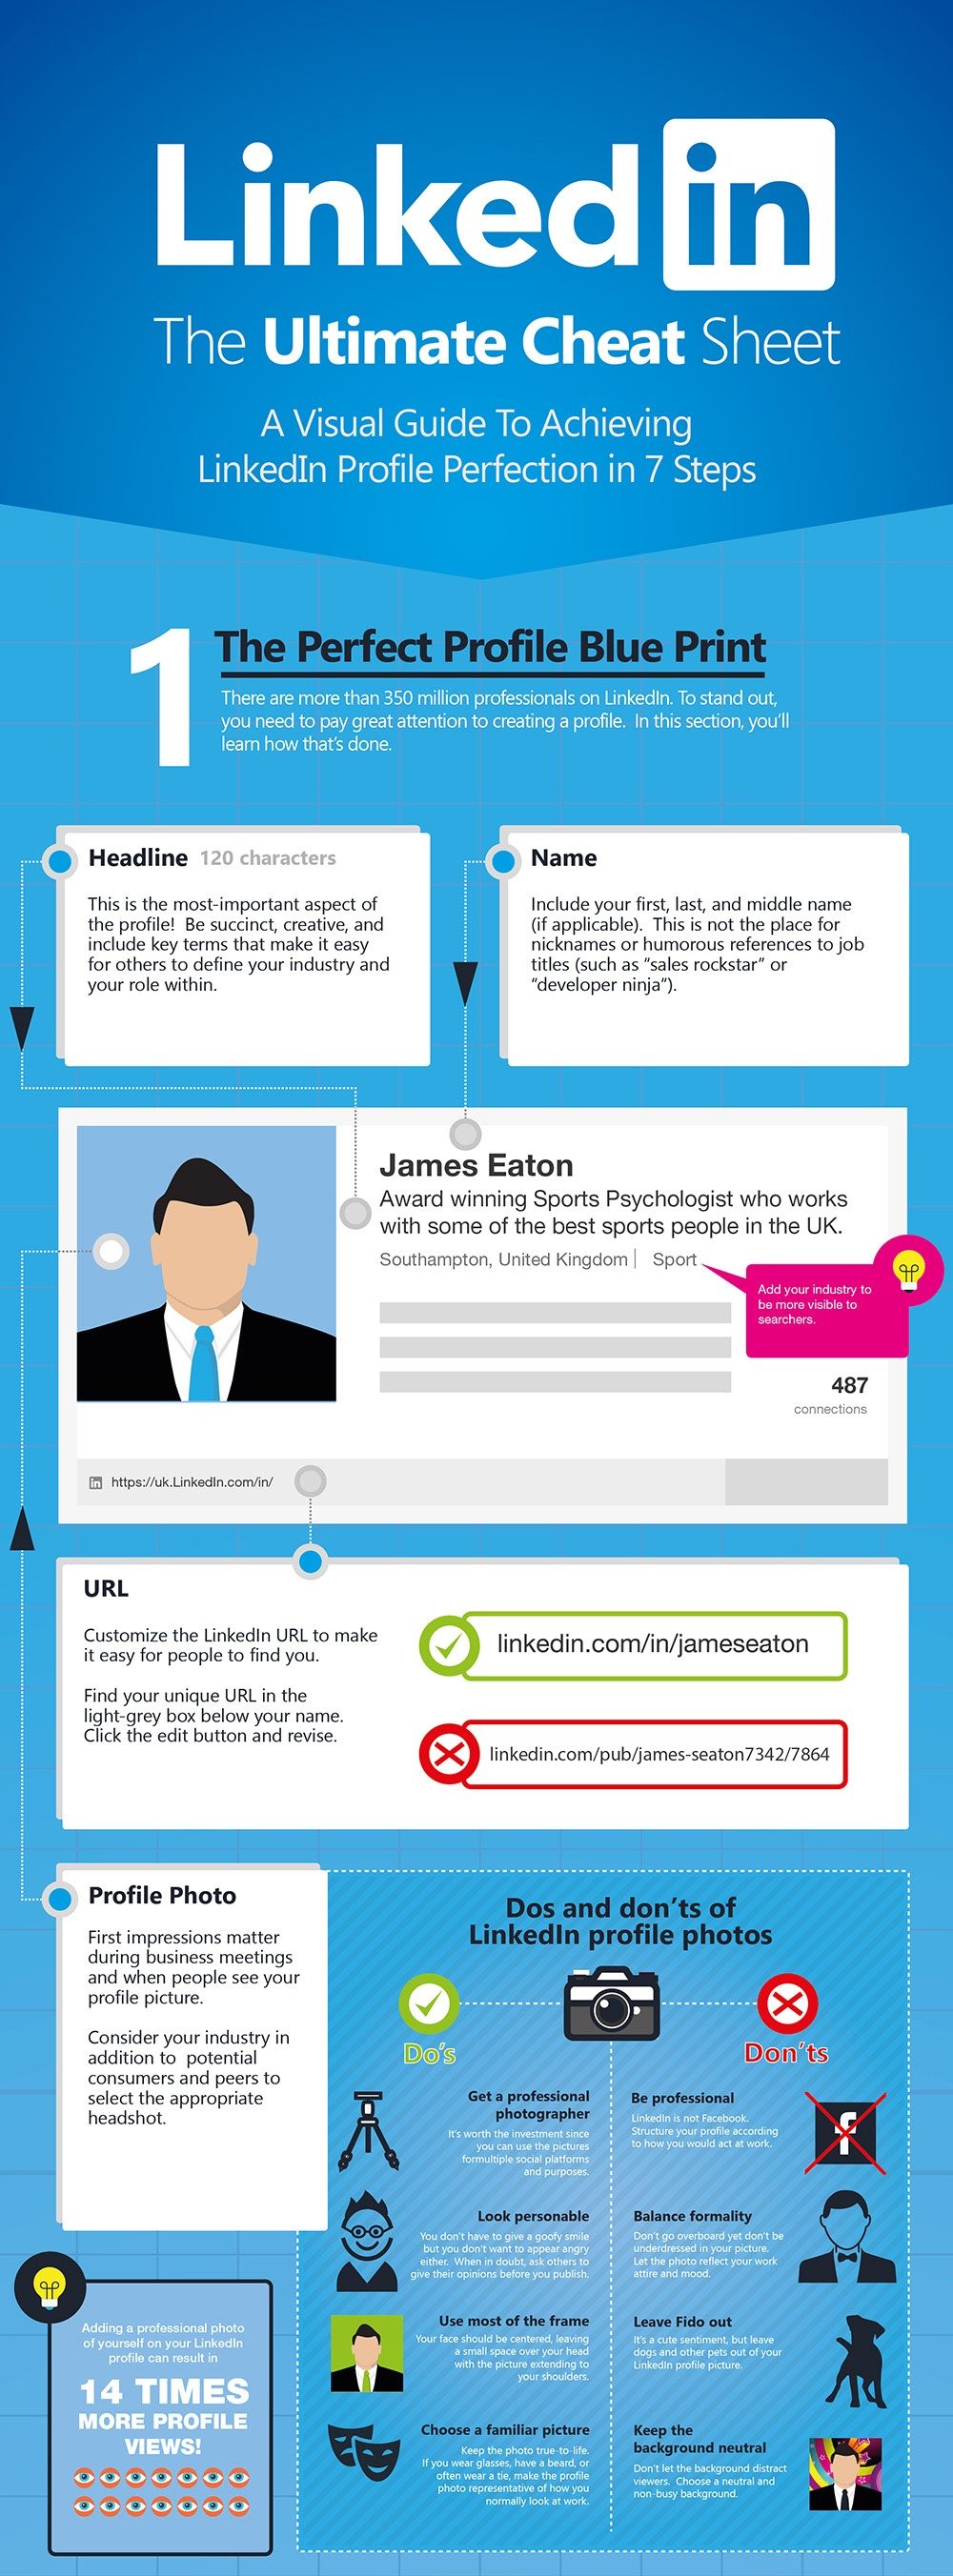 LinkedIn Profile Cheat Sheet Infographic.jpeg